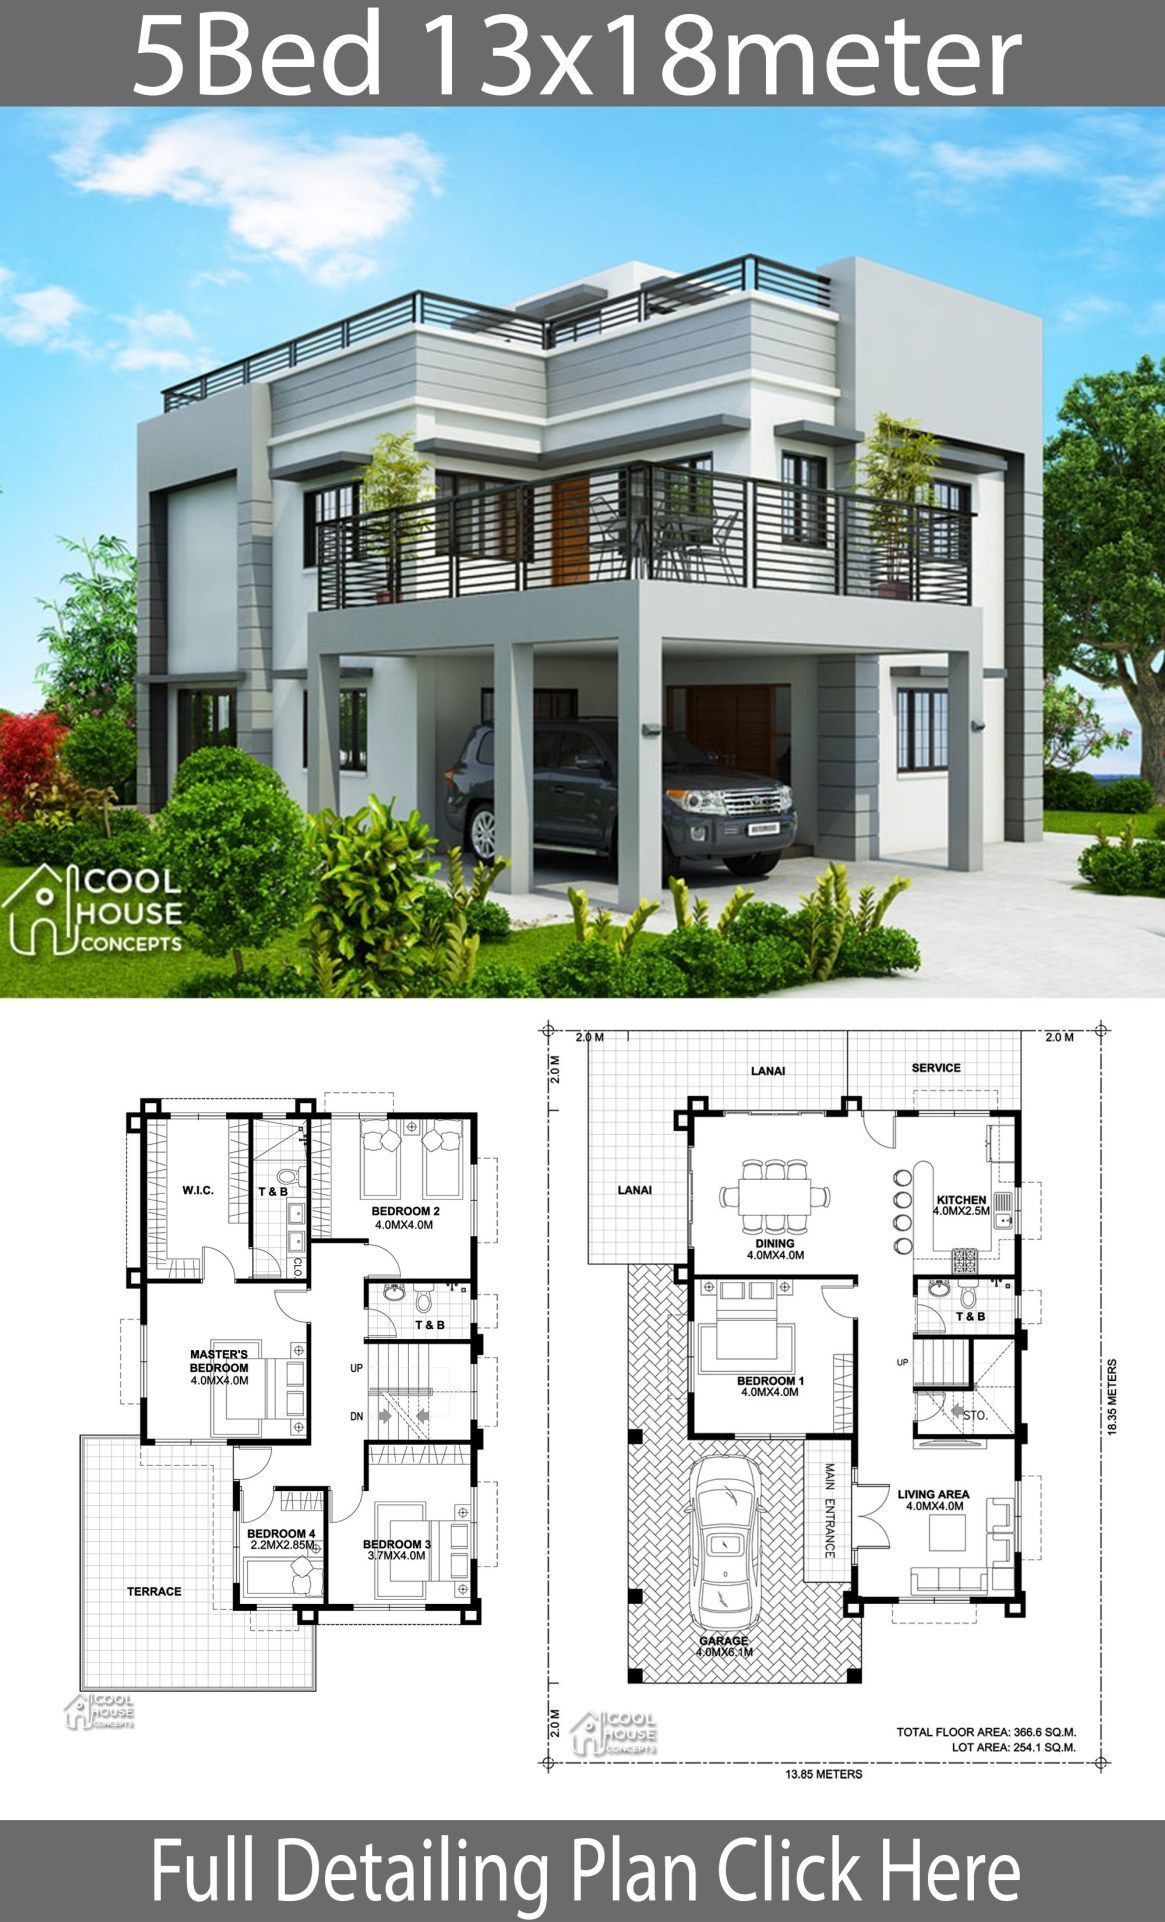 Fresh Modern House Design Architecture Layout Home Design Plan 13x18m With 5 Bedrooms Model House Plan Modern House Plans Architect Design House